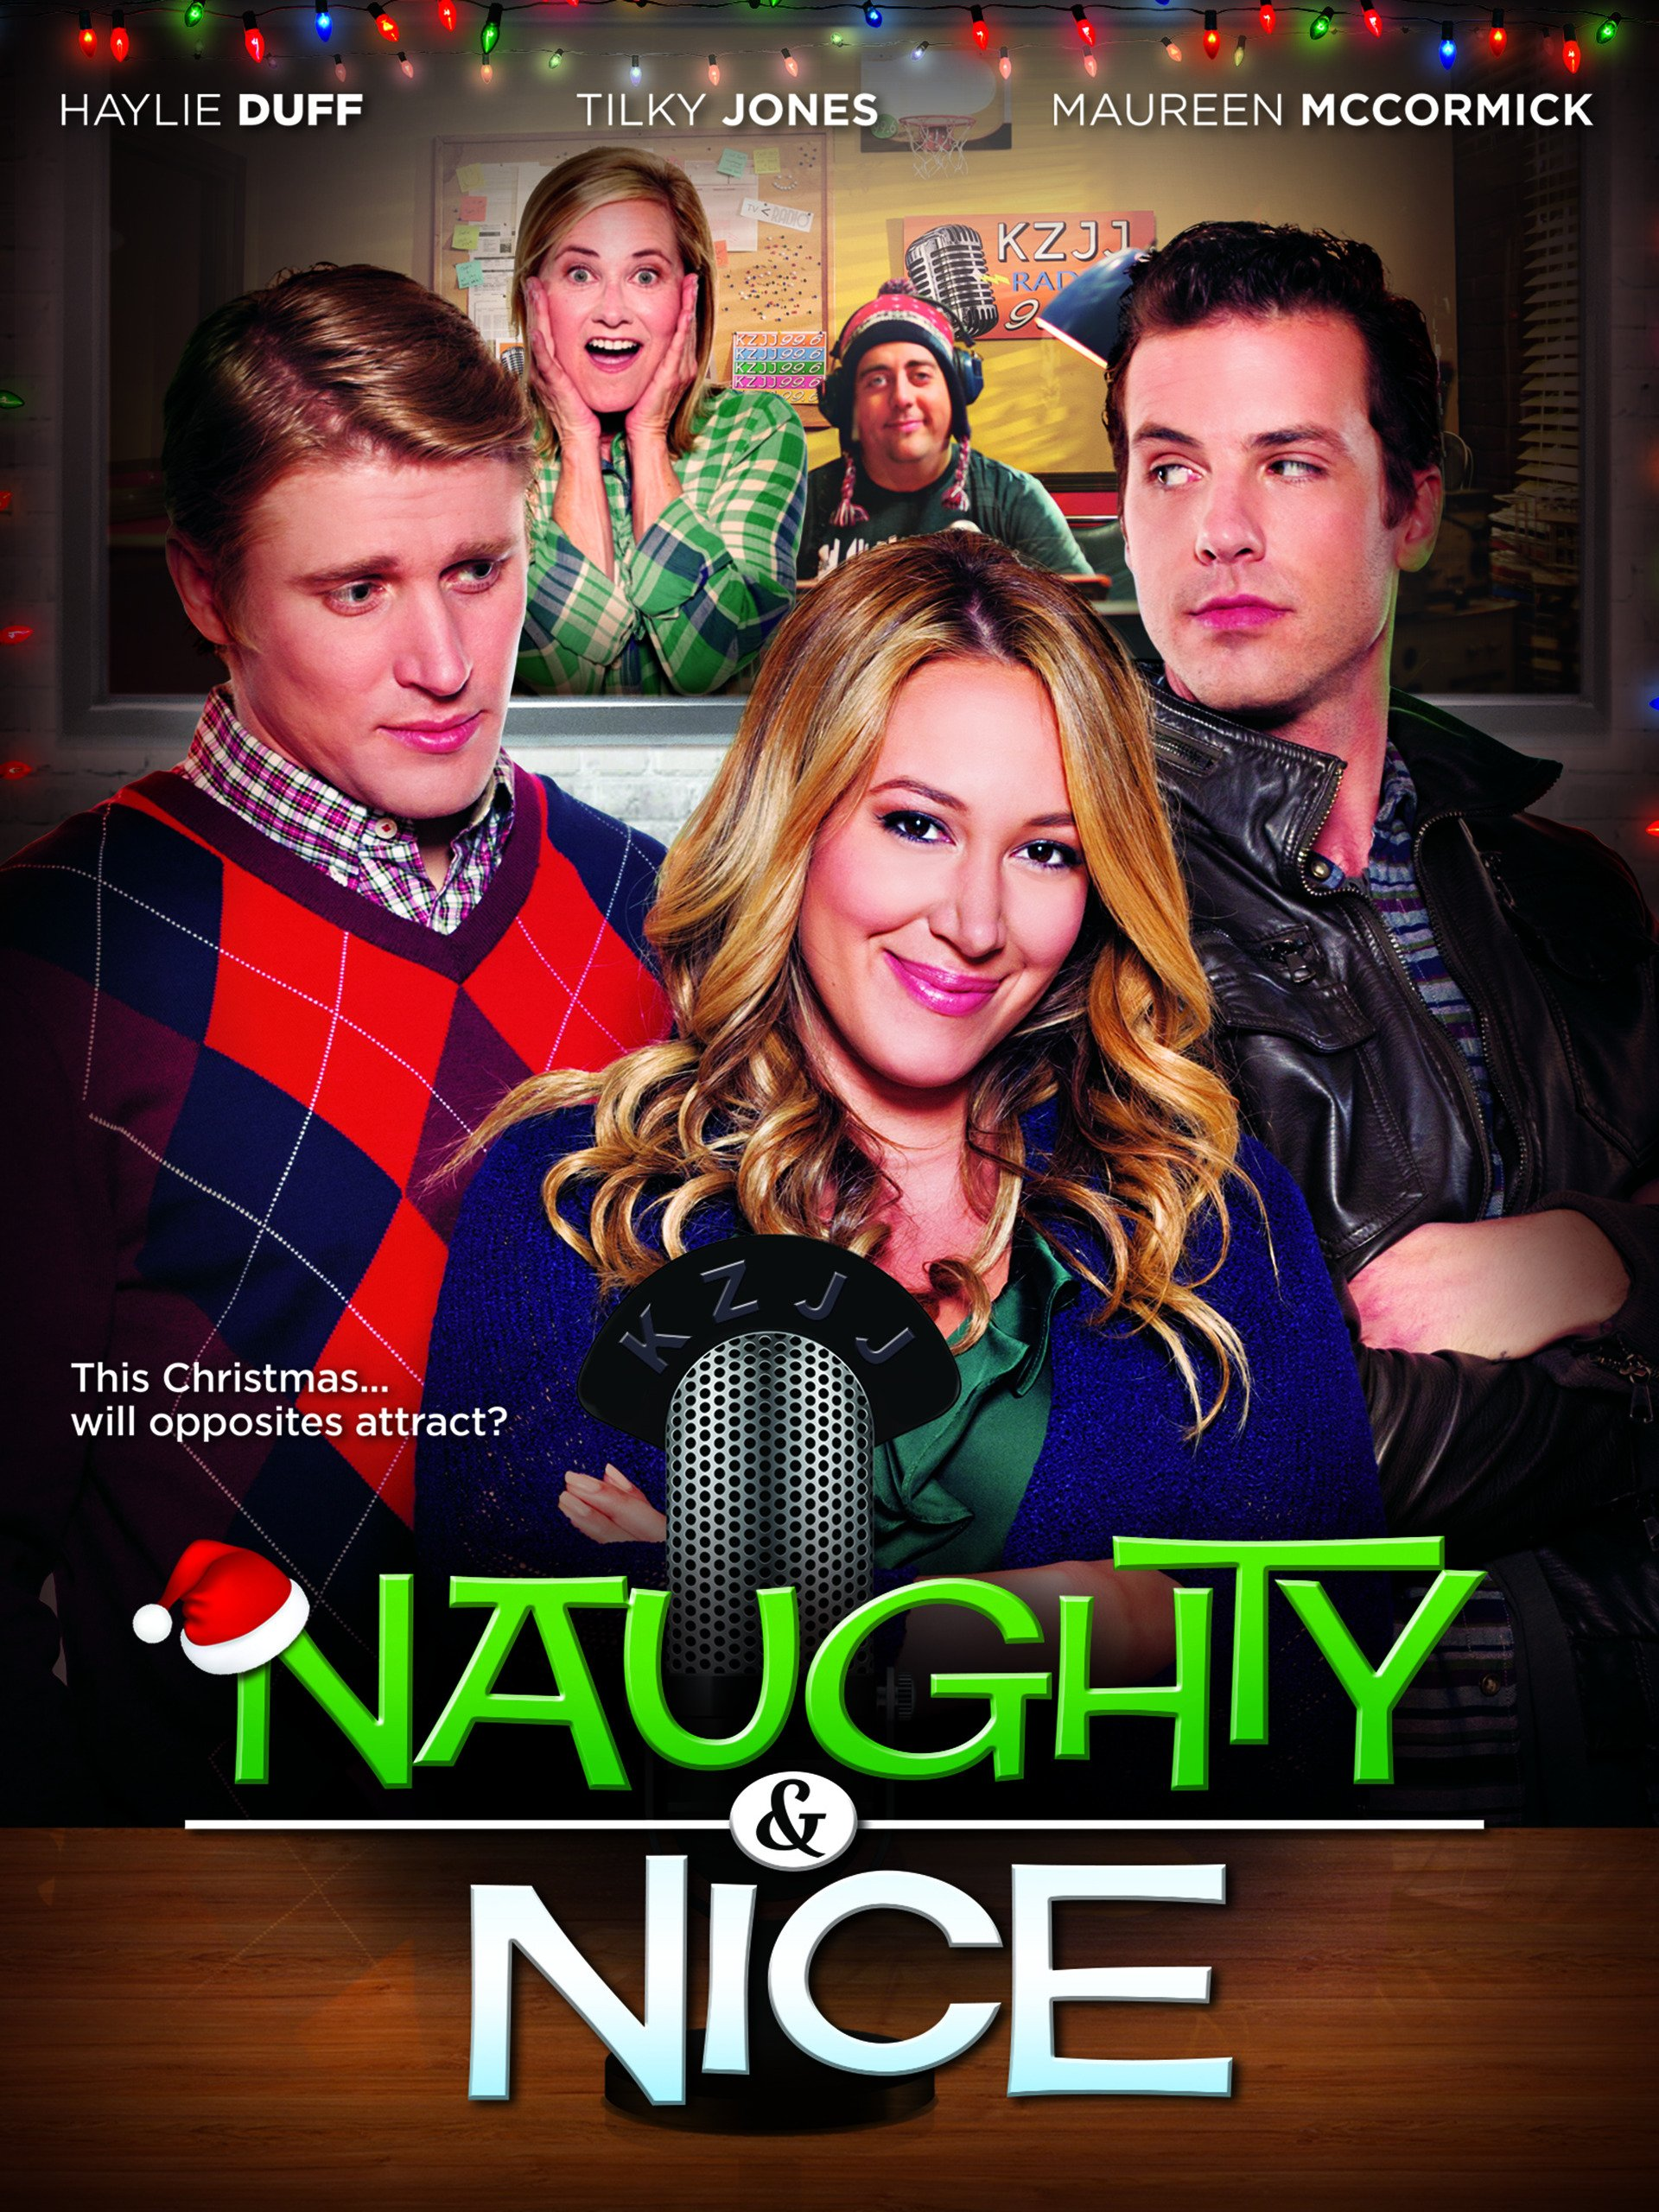 Image result for naughty & nice movie